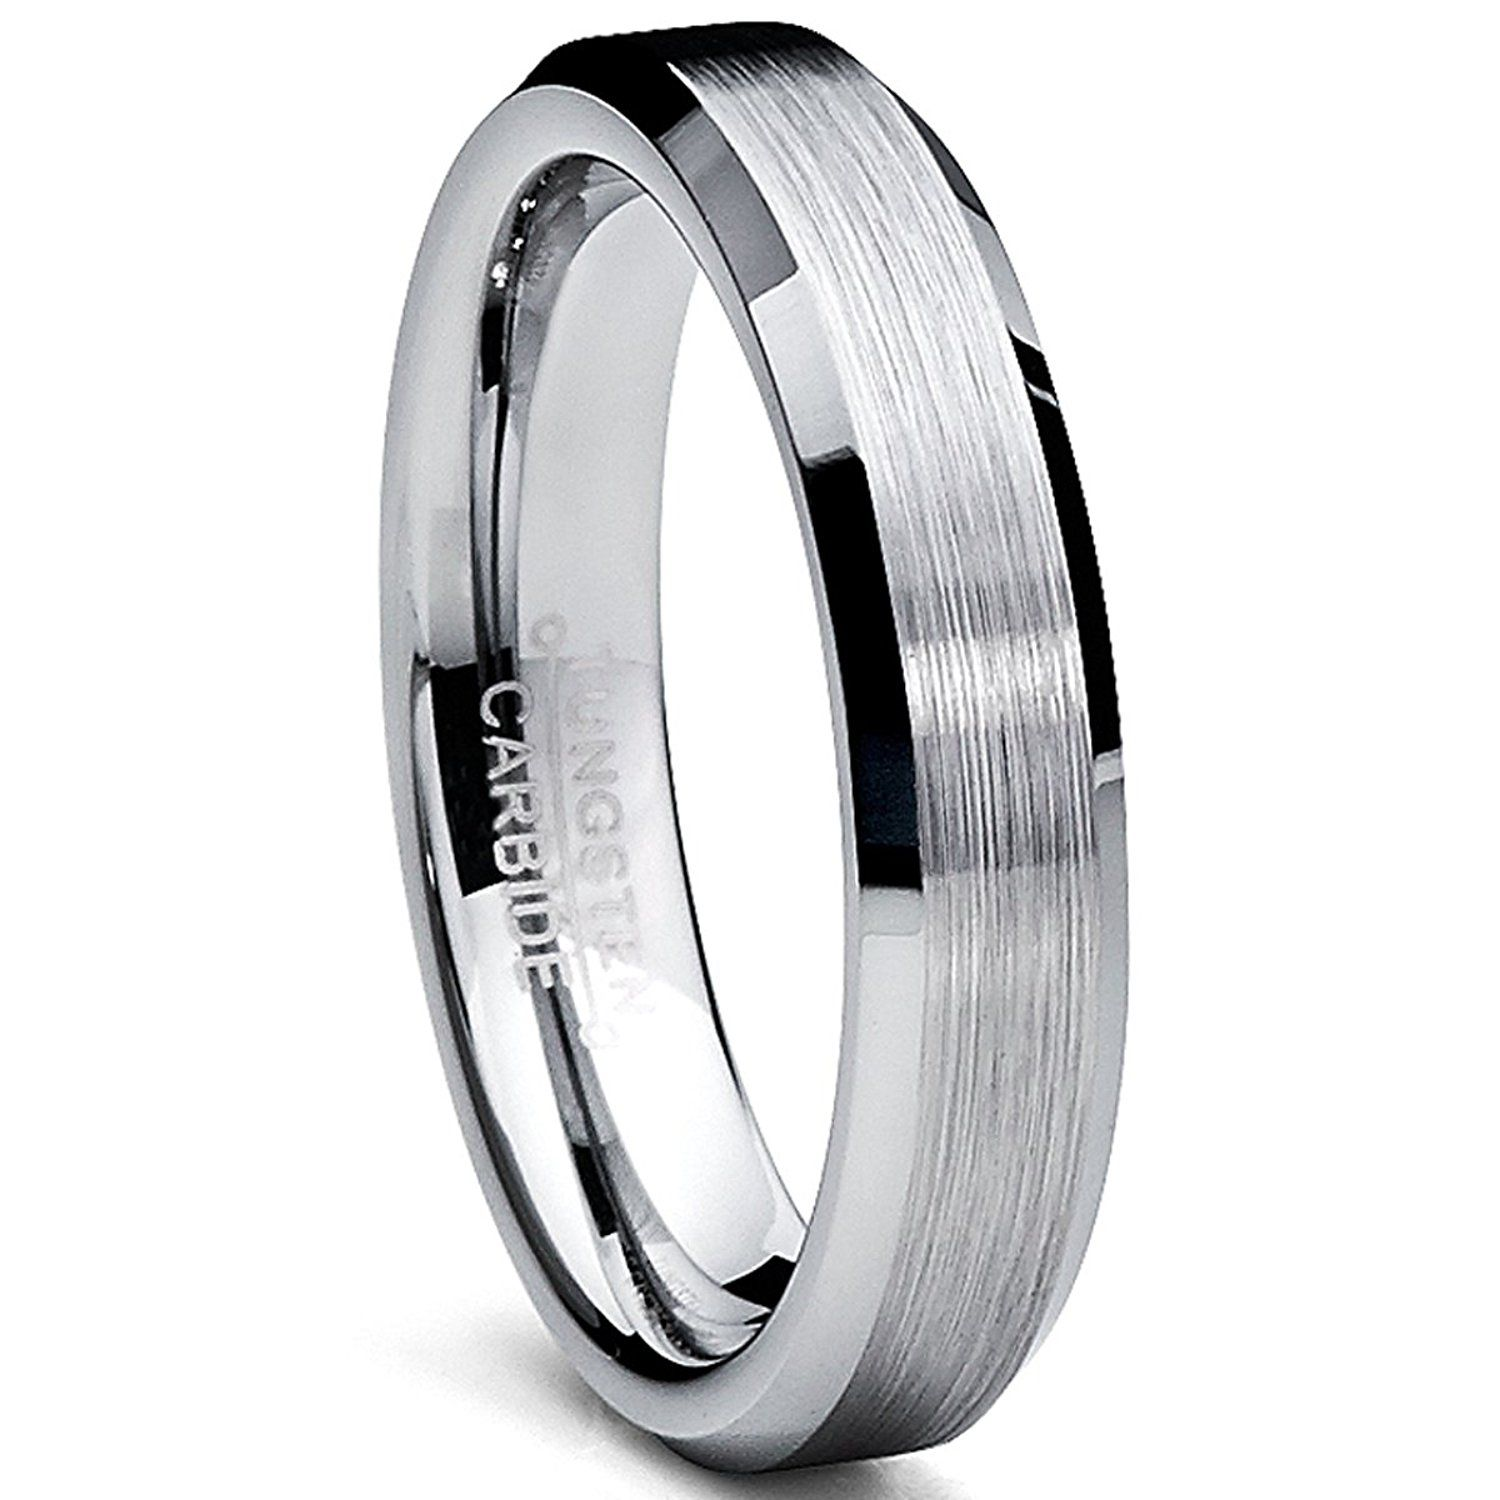 Ultimate Metals Co. Black Plated Cubic Zirconia Titanium Wedding Band Engagment Ring Comfort Fit Unisex WS4C78DHc